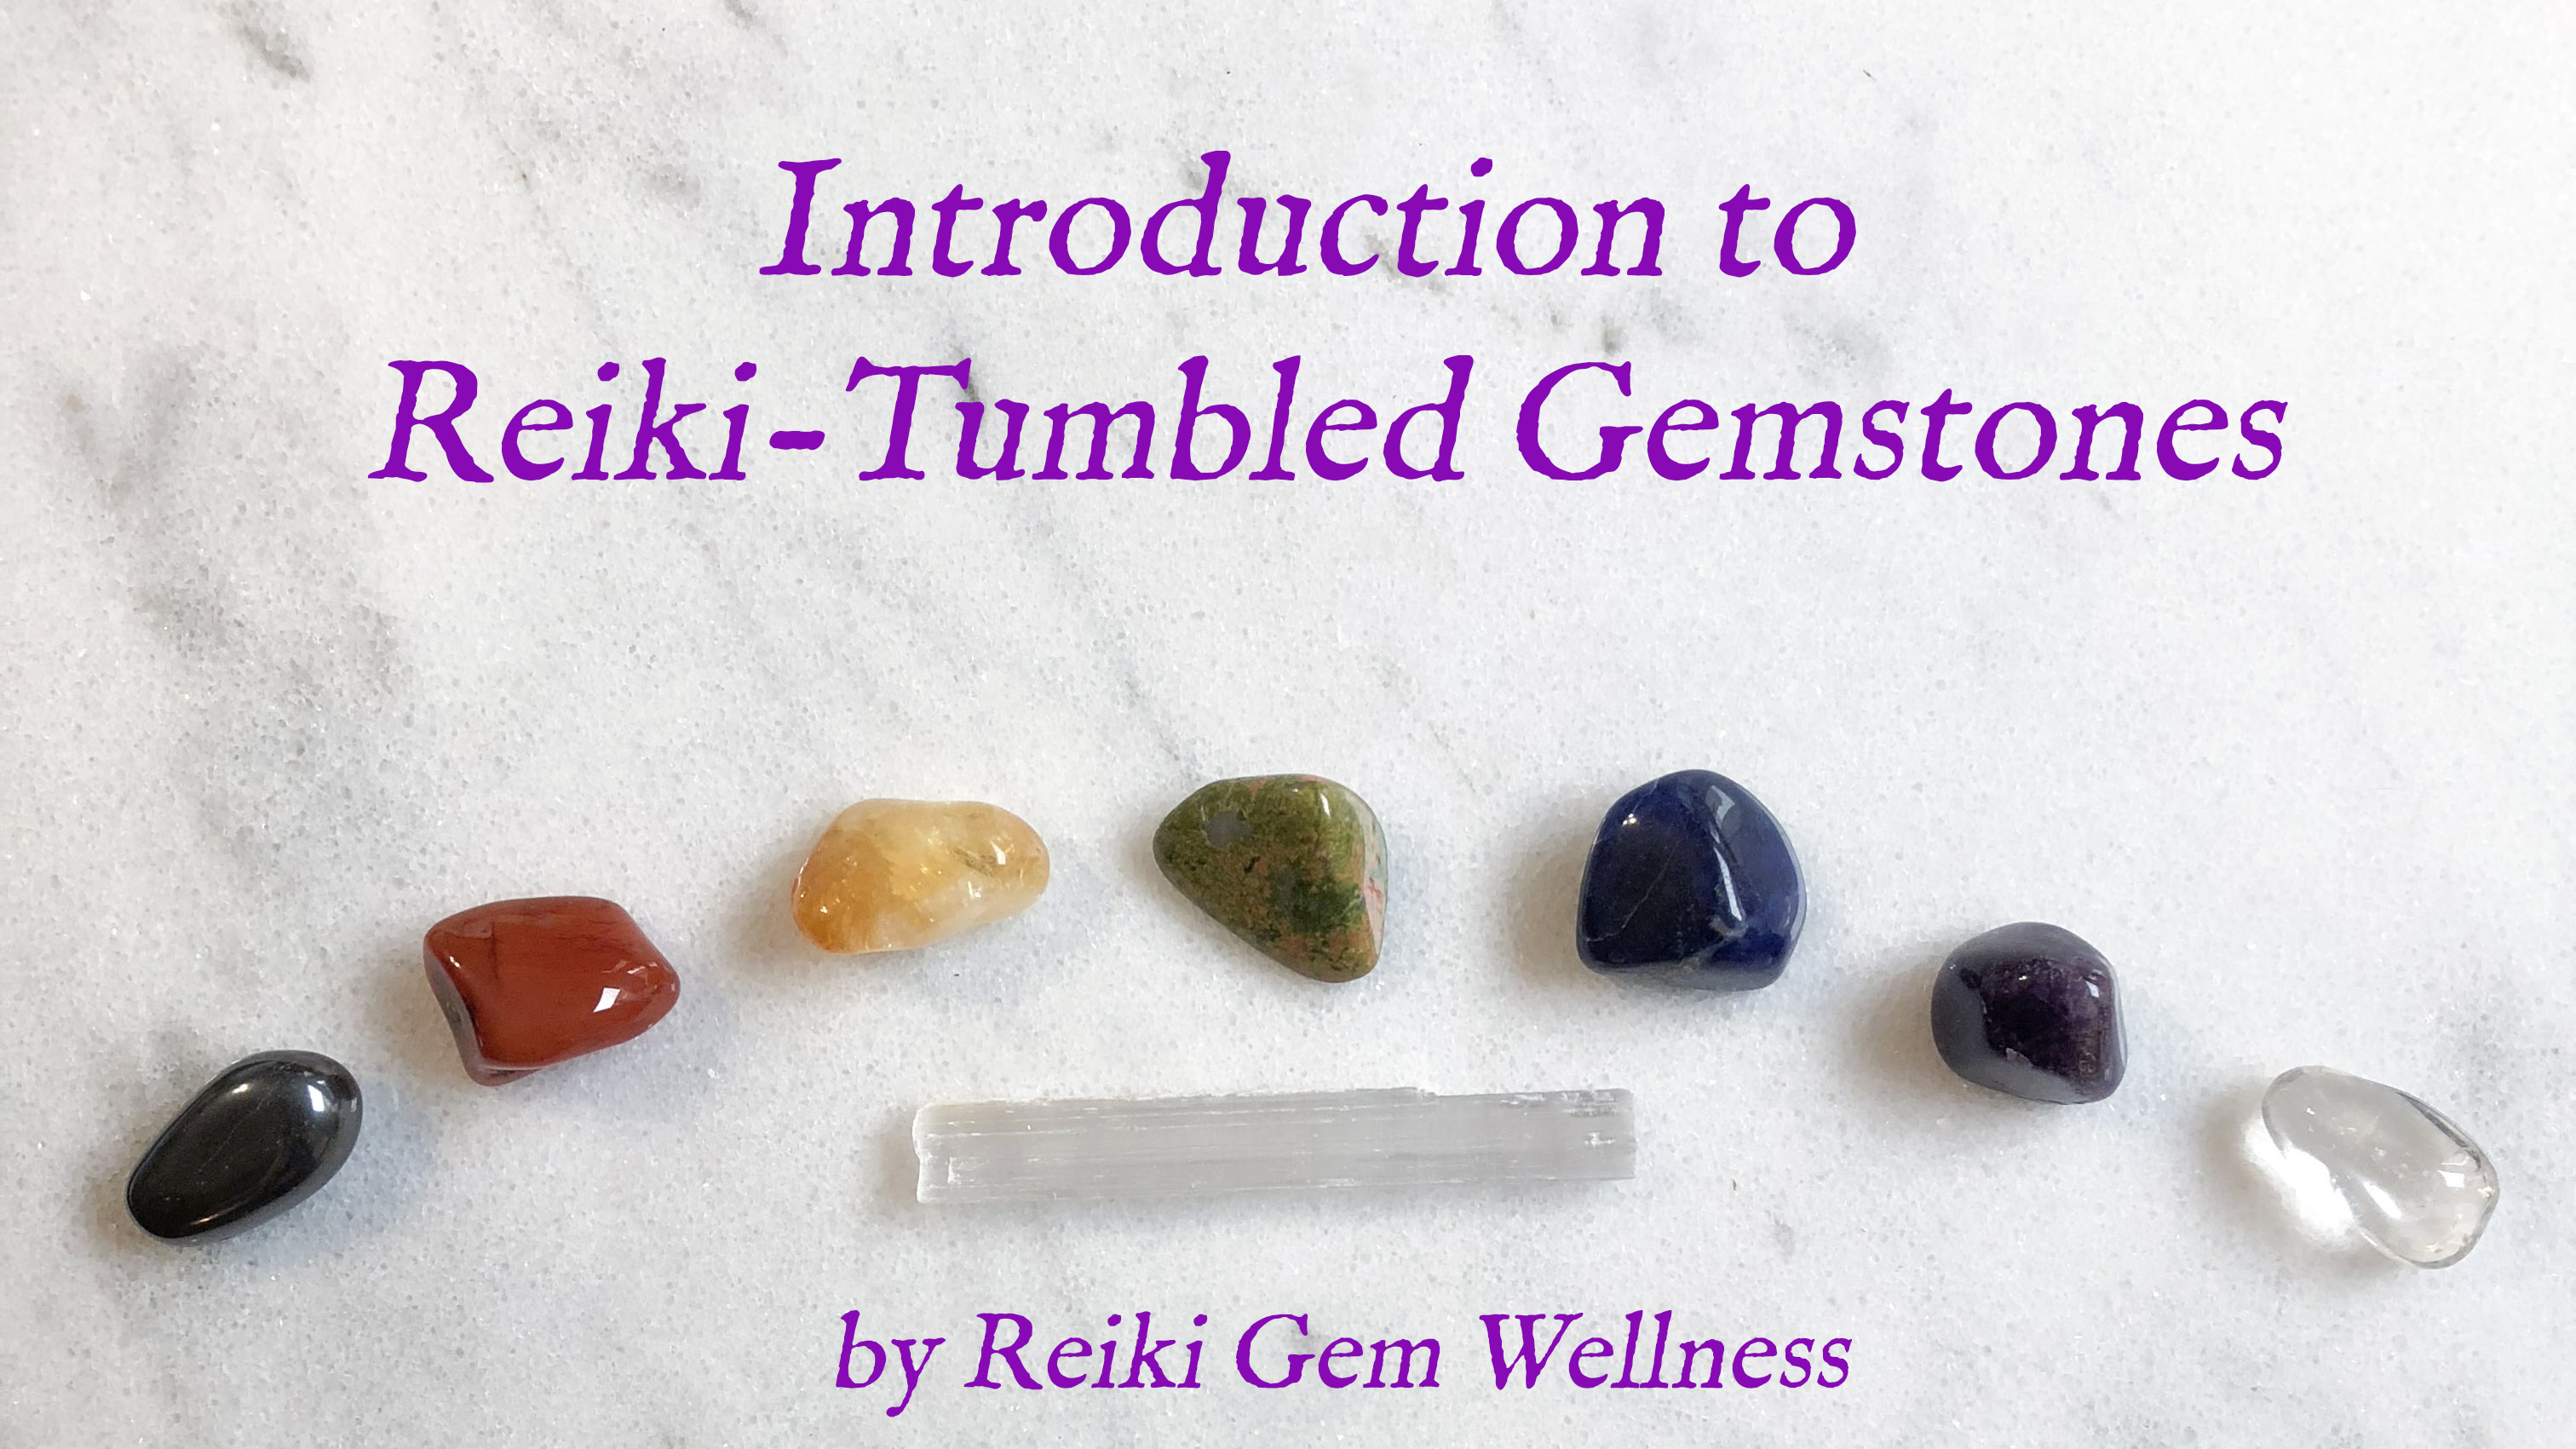 reiki tumbled gemstones